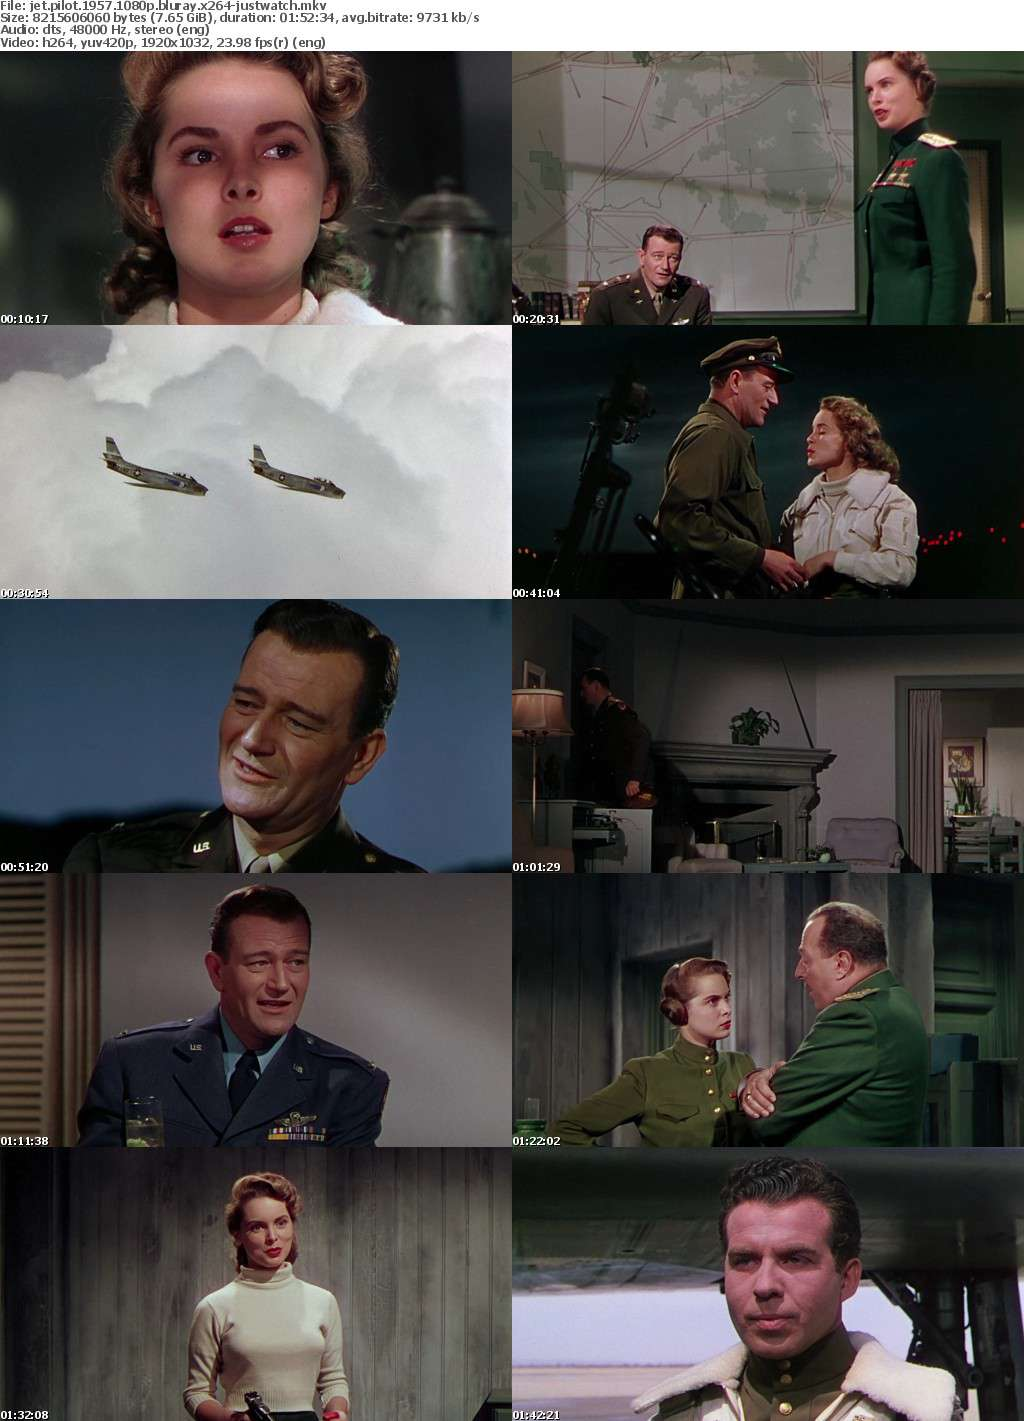 Jet Pilot 1957 1080p BluRay x264-JustWatch